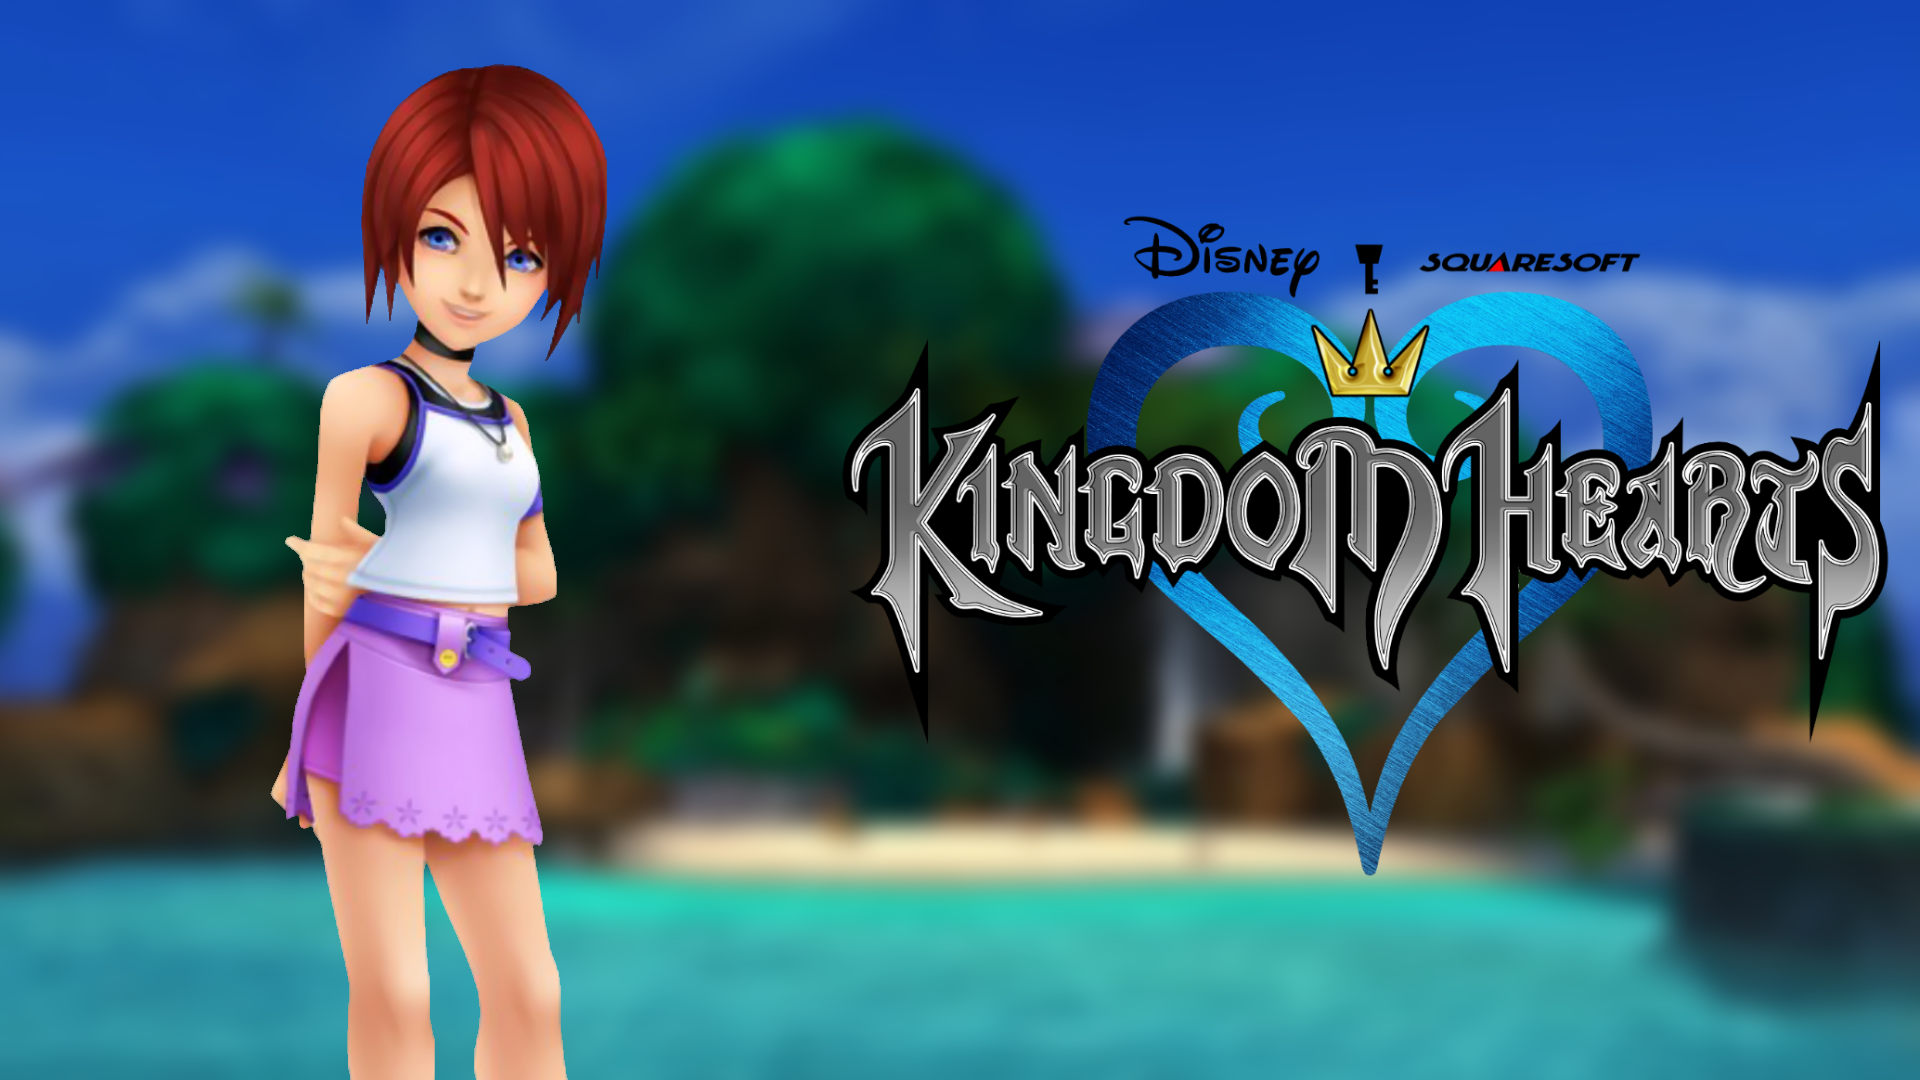 Guia definitivo da saga Kingdom Hearts - Parte 1 3